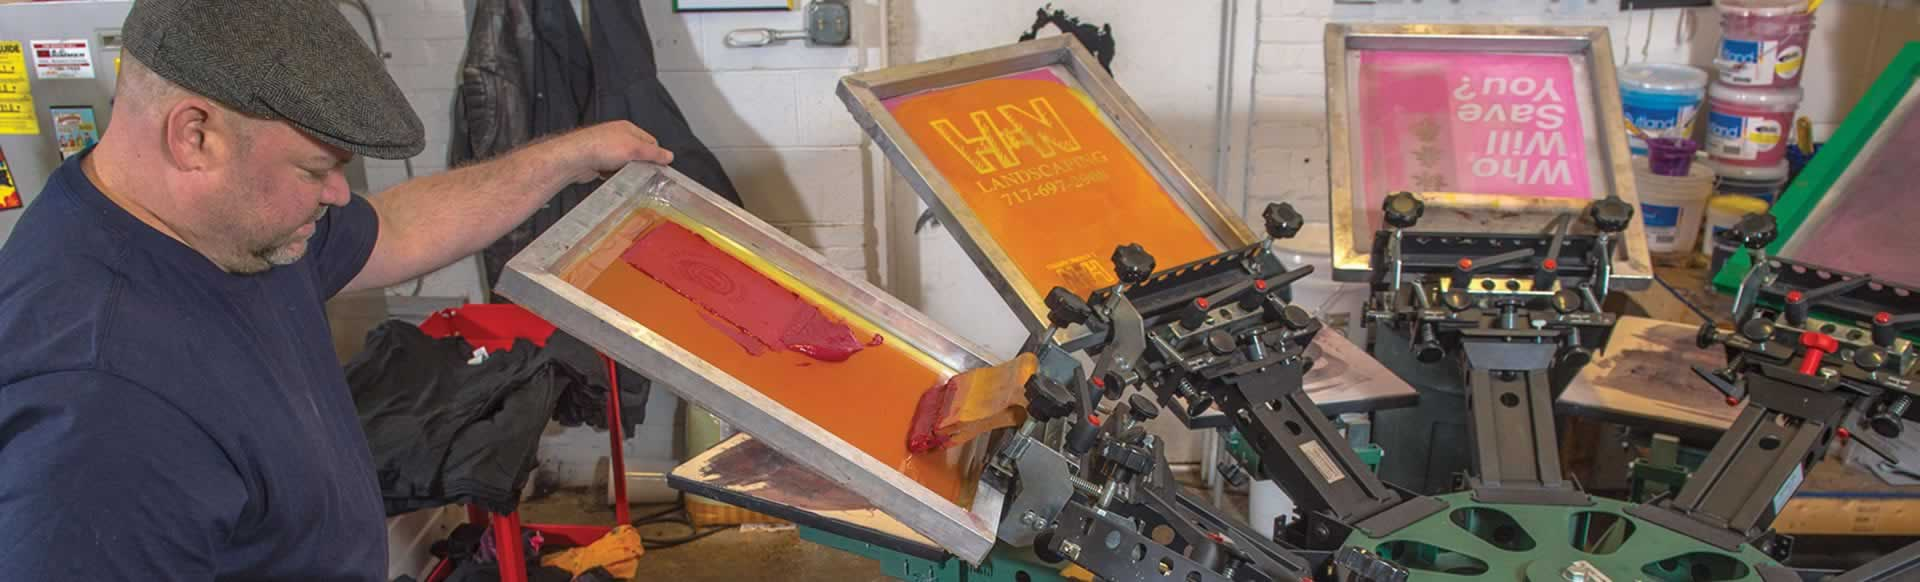 Manual Printing Press Transforms Hobby into High-Wattage Business